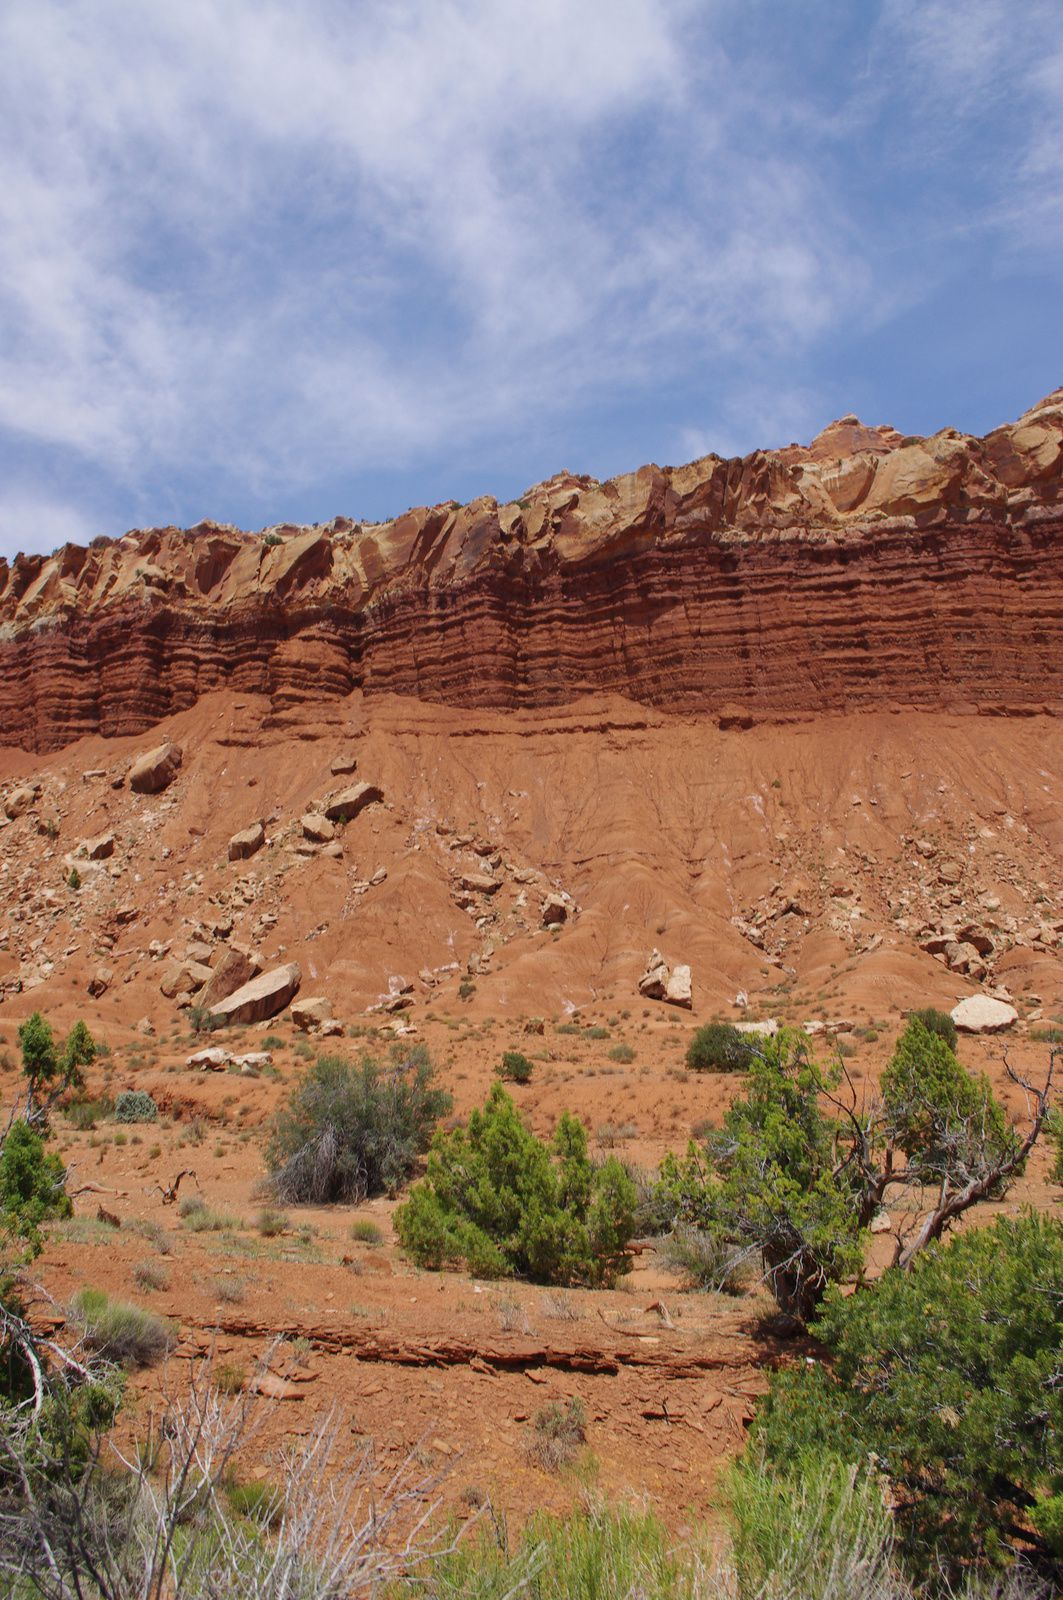 USA Road Trip - Jour 16/25 - Capitol Reef National Park - Torrey